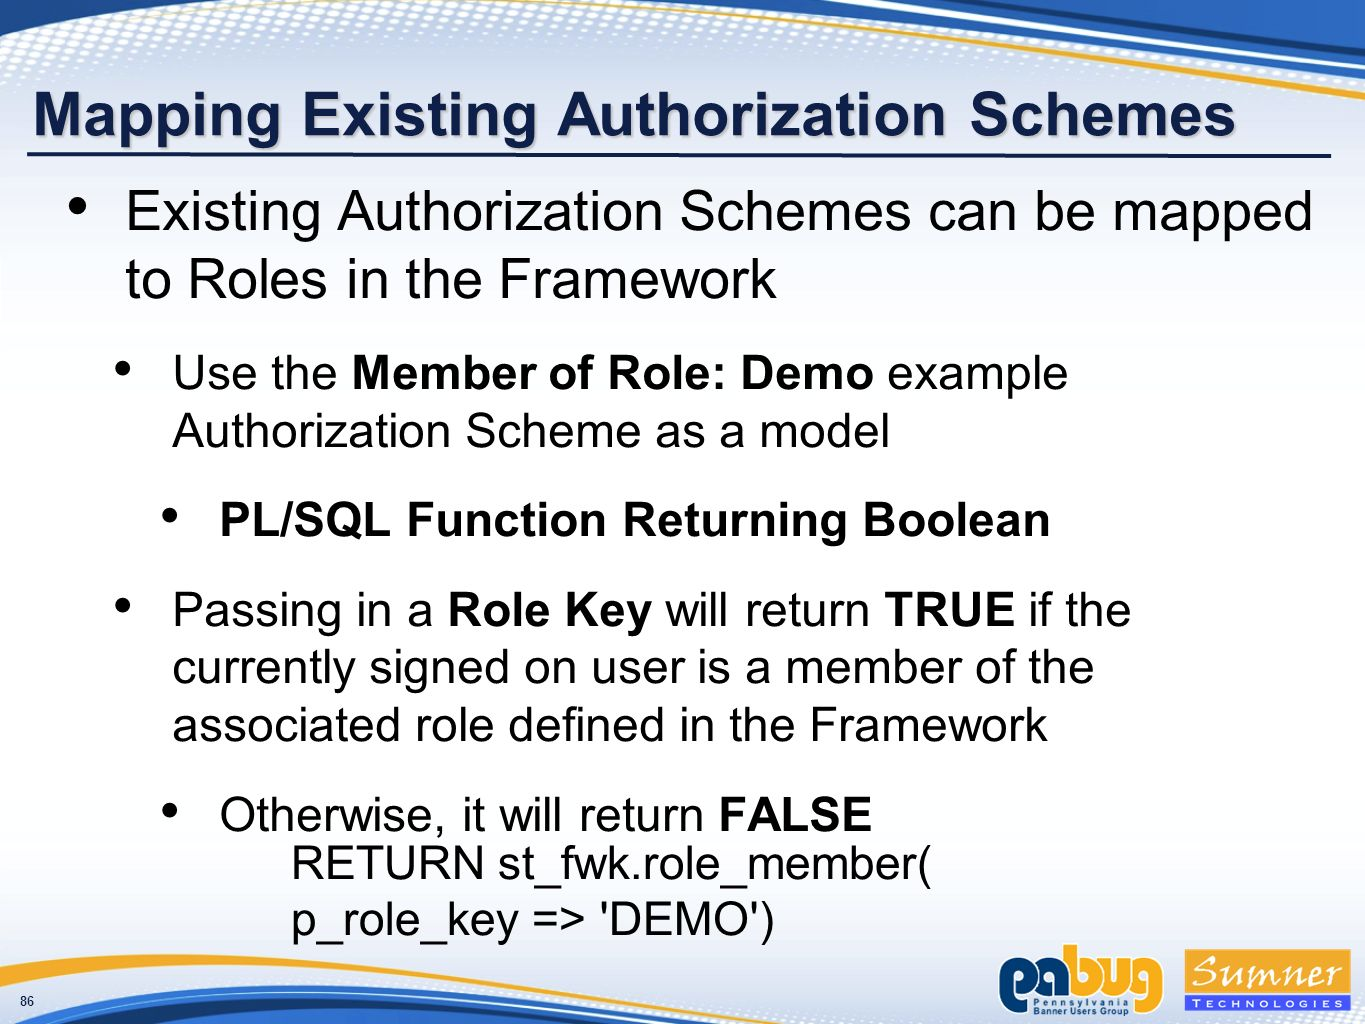 86 Mapping Existing Authorization Schemes Existing Authorization Schemes can be mapped to Roles in the Framework Use the Member of Role: Demo example Authorization Scheme as a model PL/SQL Function Returning Boolean Passing in a Role Key will return TRUE if the currently signed on user is a member of the associated role defined in the Framework Otherwise, it will return FALSE RETURN st_fwk.role_member( p_role_key => DEMO )